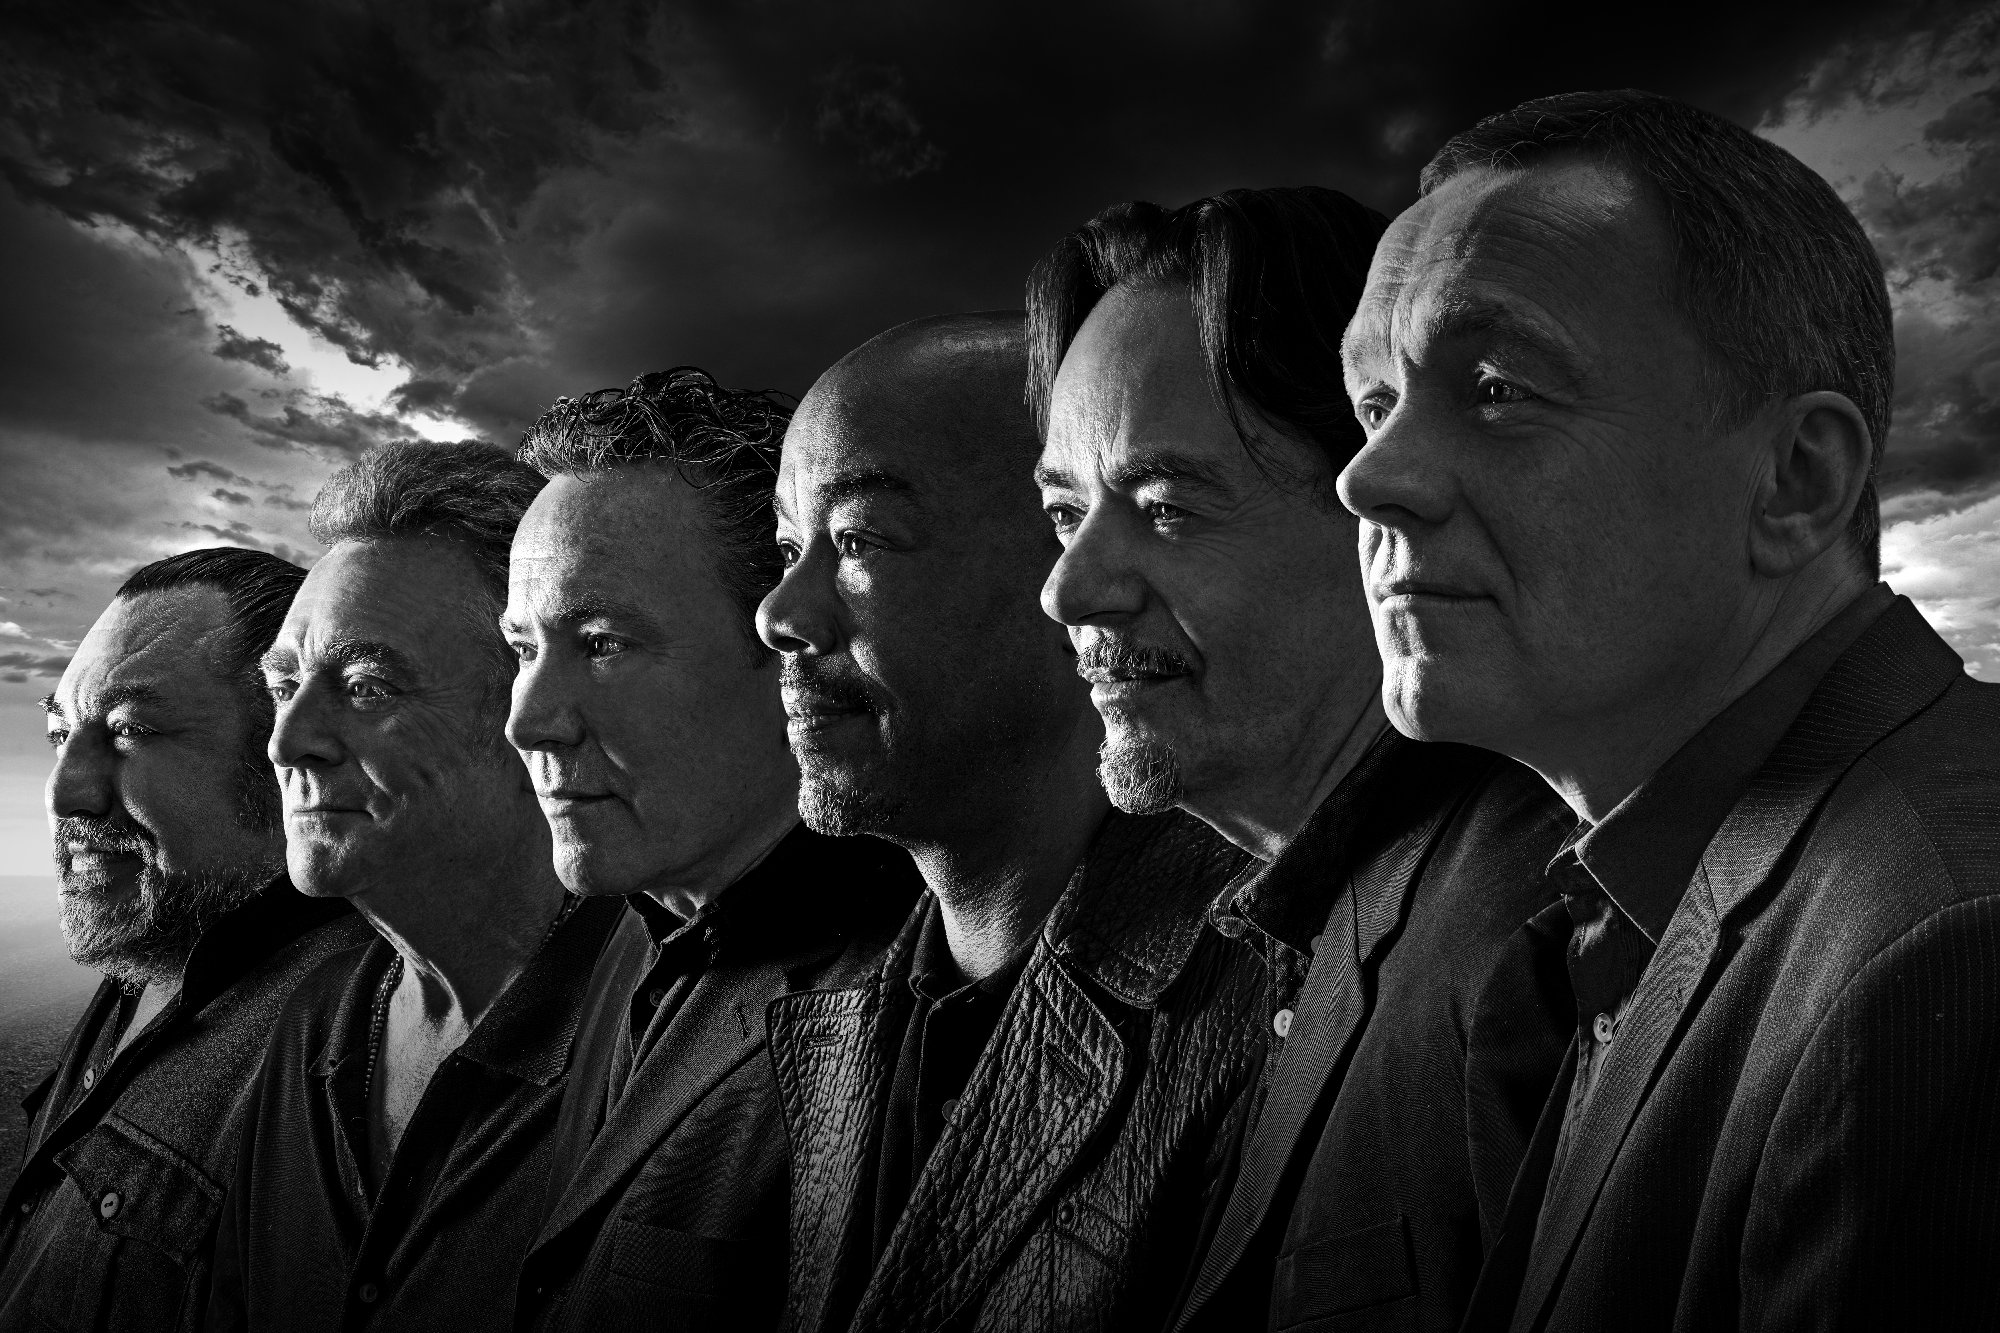 Cliffs UB40 gig postponed - singer loses voice